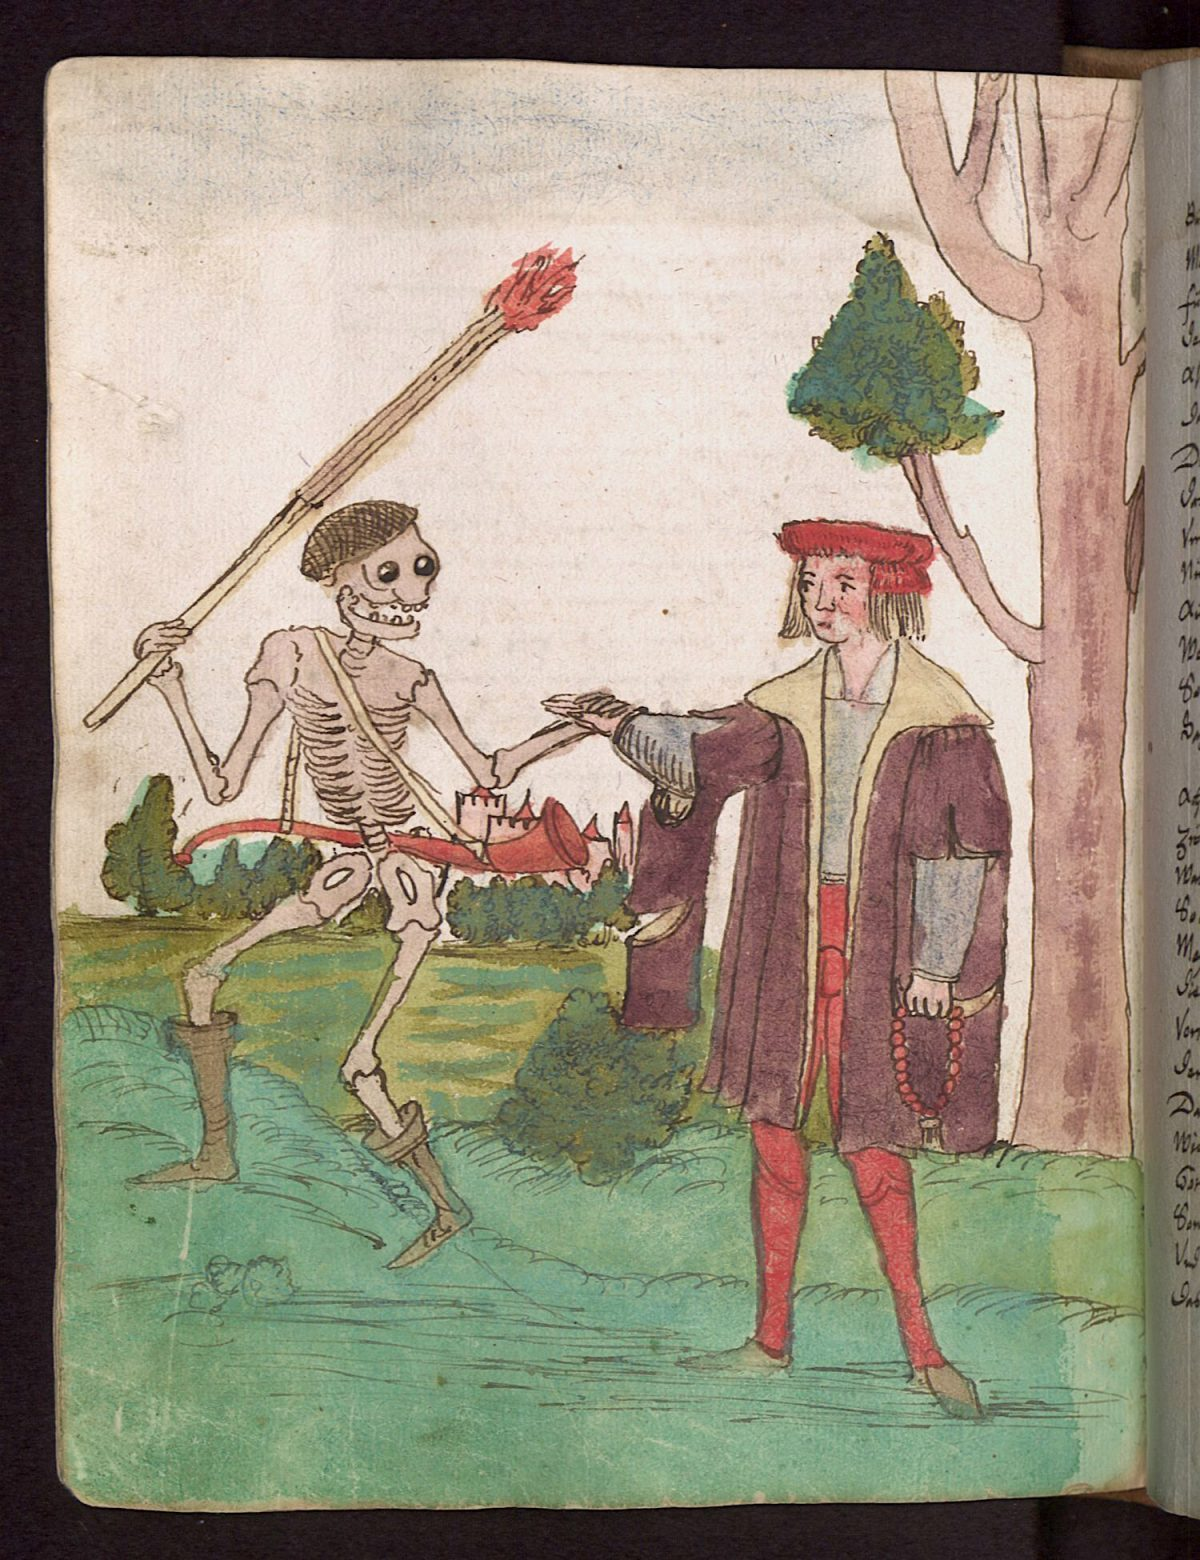 Wilhelm Werner von Zimmer, Dance of Death, illustration, 1540